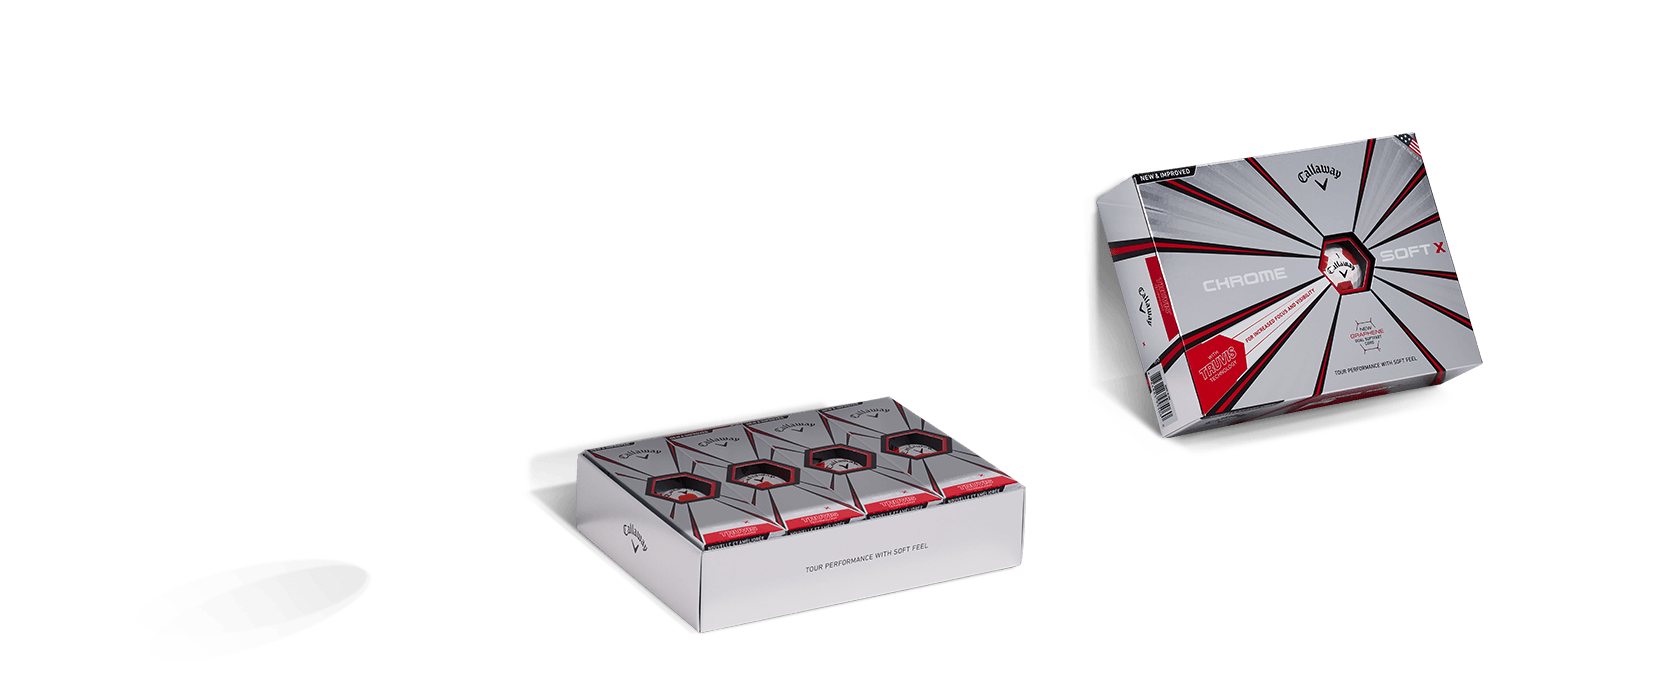 Chrome Soft Truvis Golf Ball Box